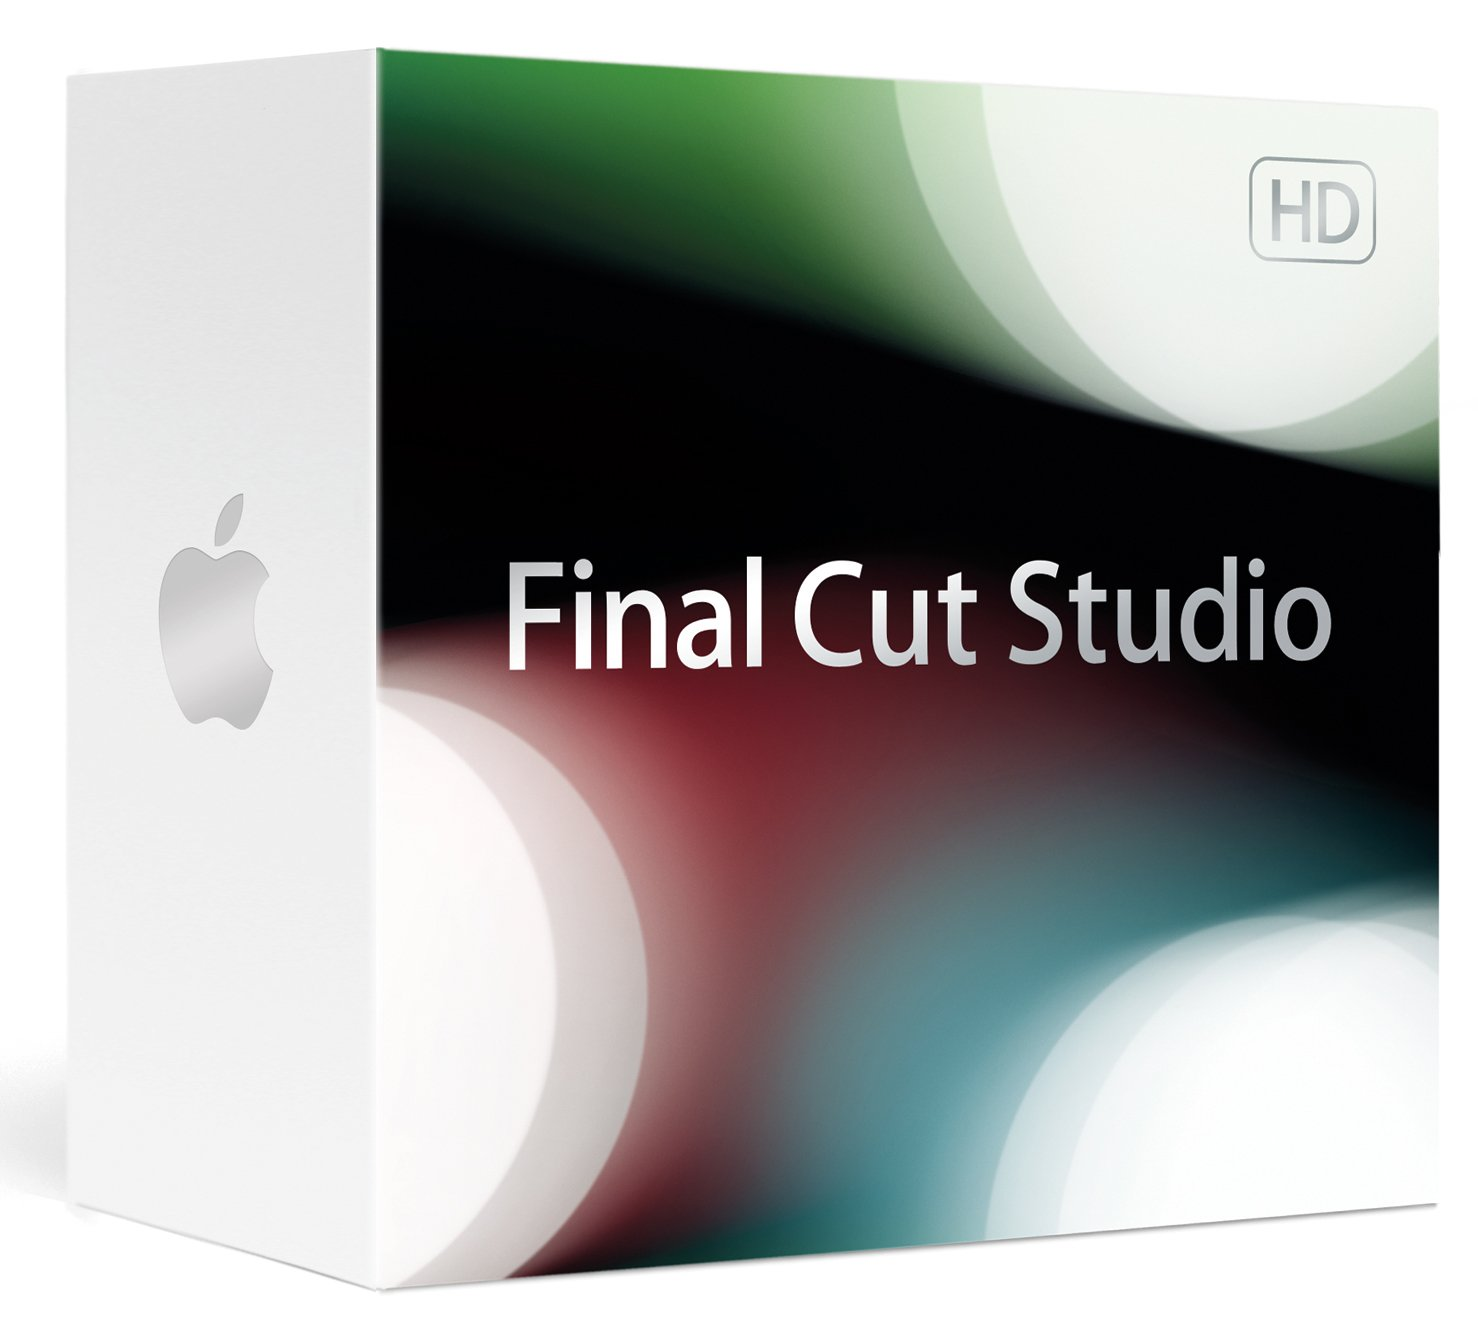 Final cut studio 3 apps only